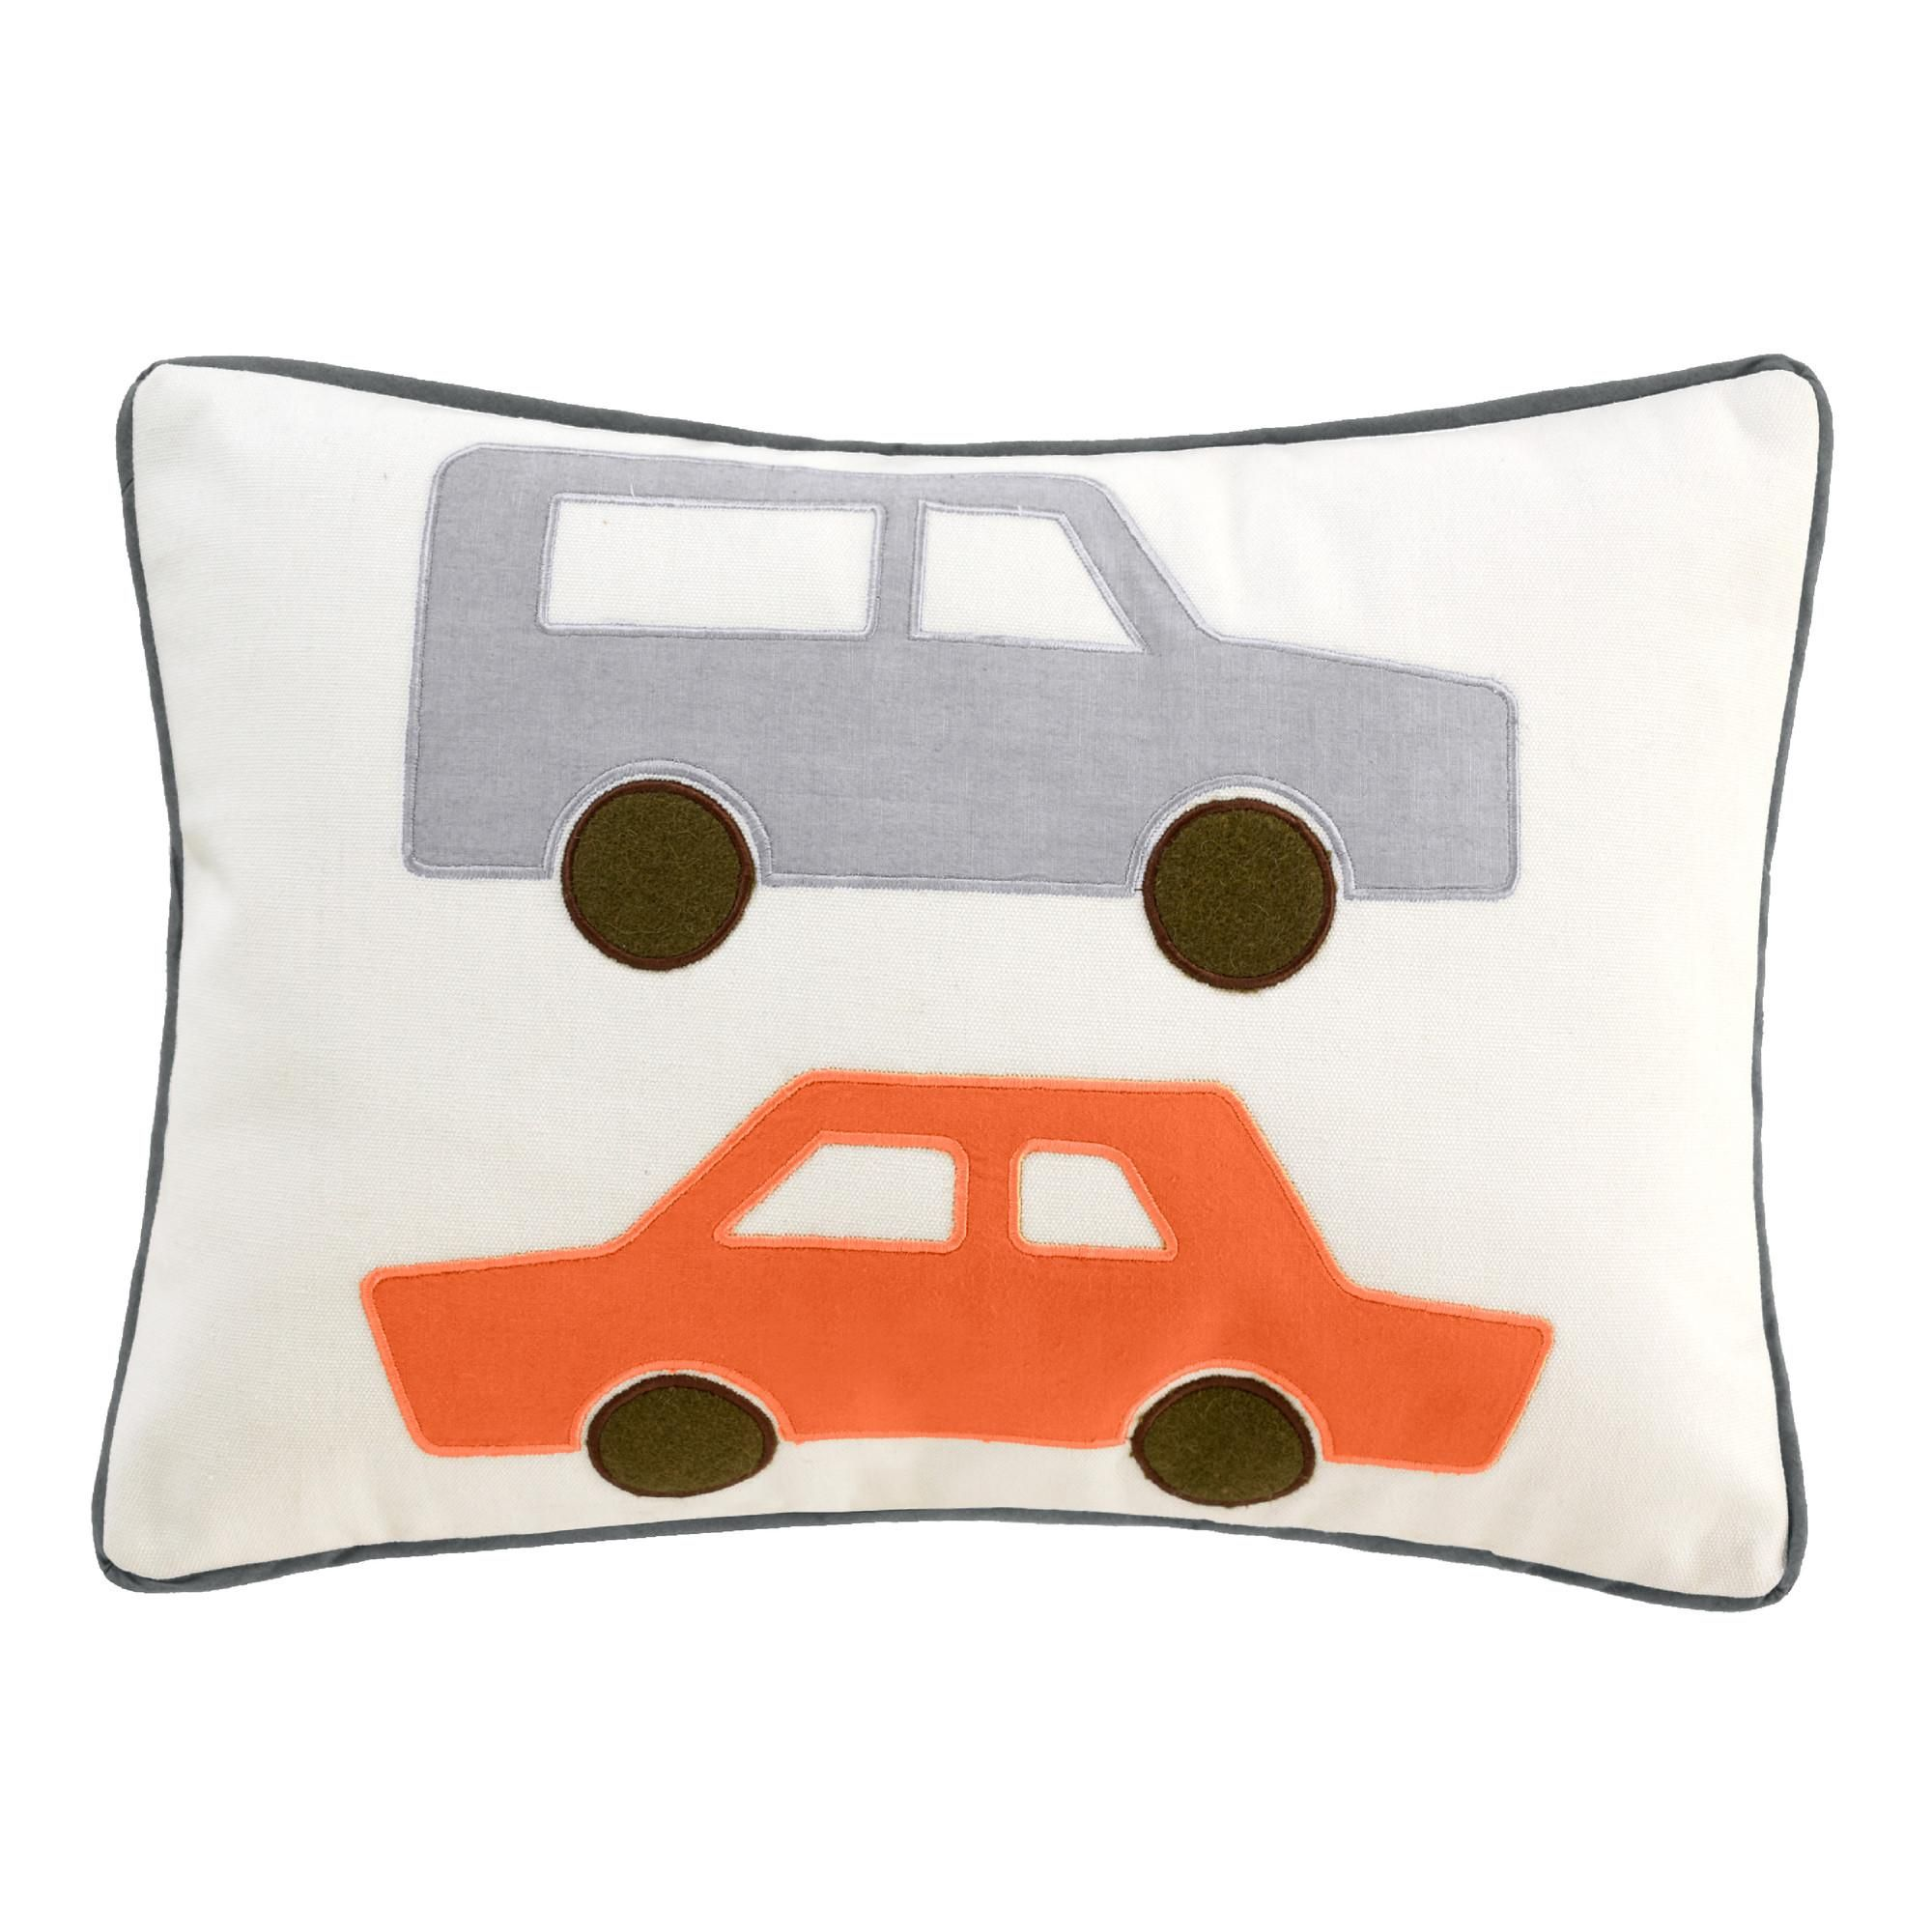 Studio Faves: Baby Shower Gifts. Cars Skyline Boudoir Pillow | Complete the room with a coordinating boudoir pillow.